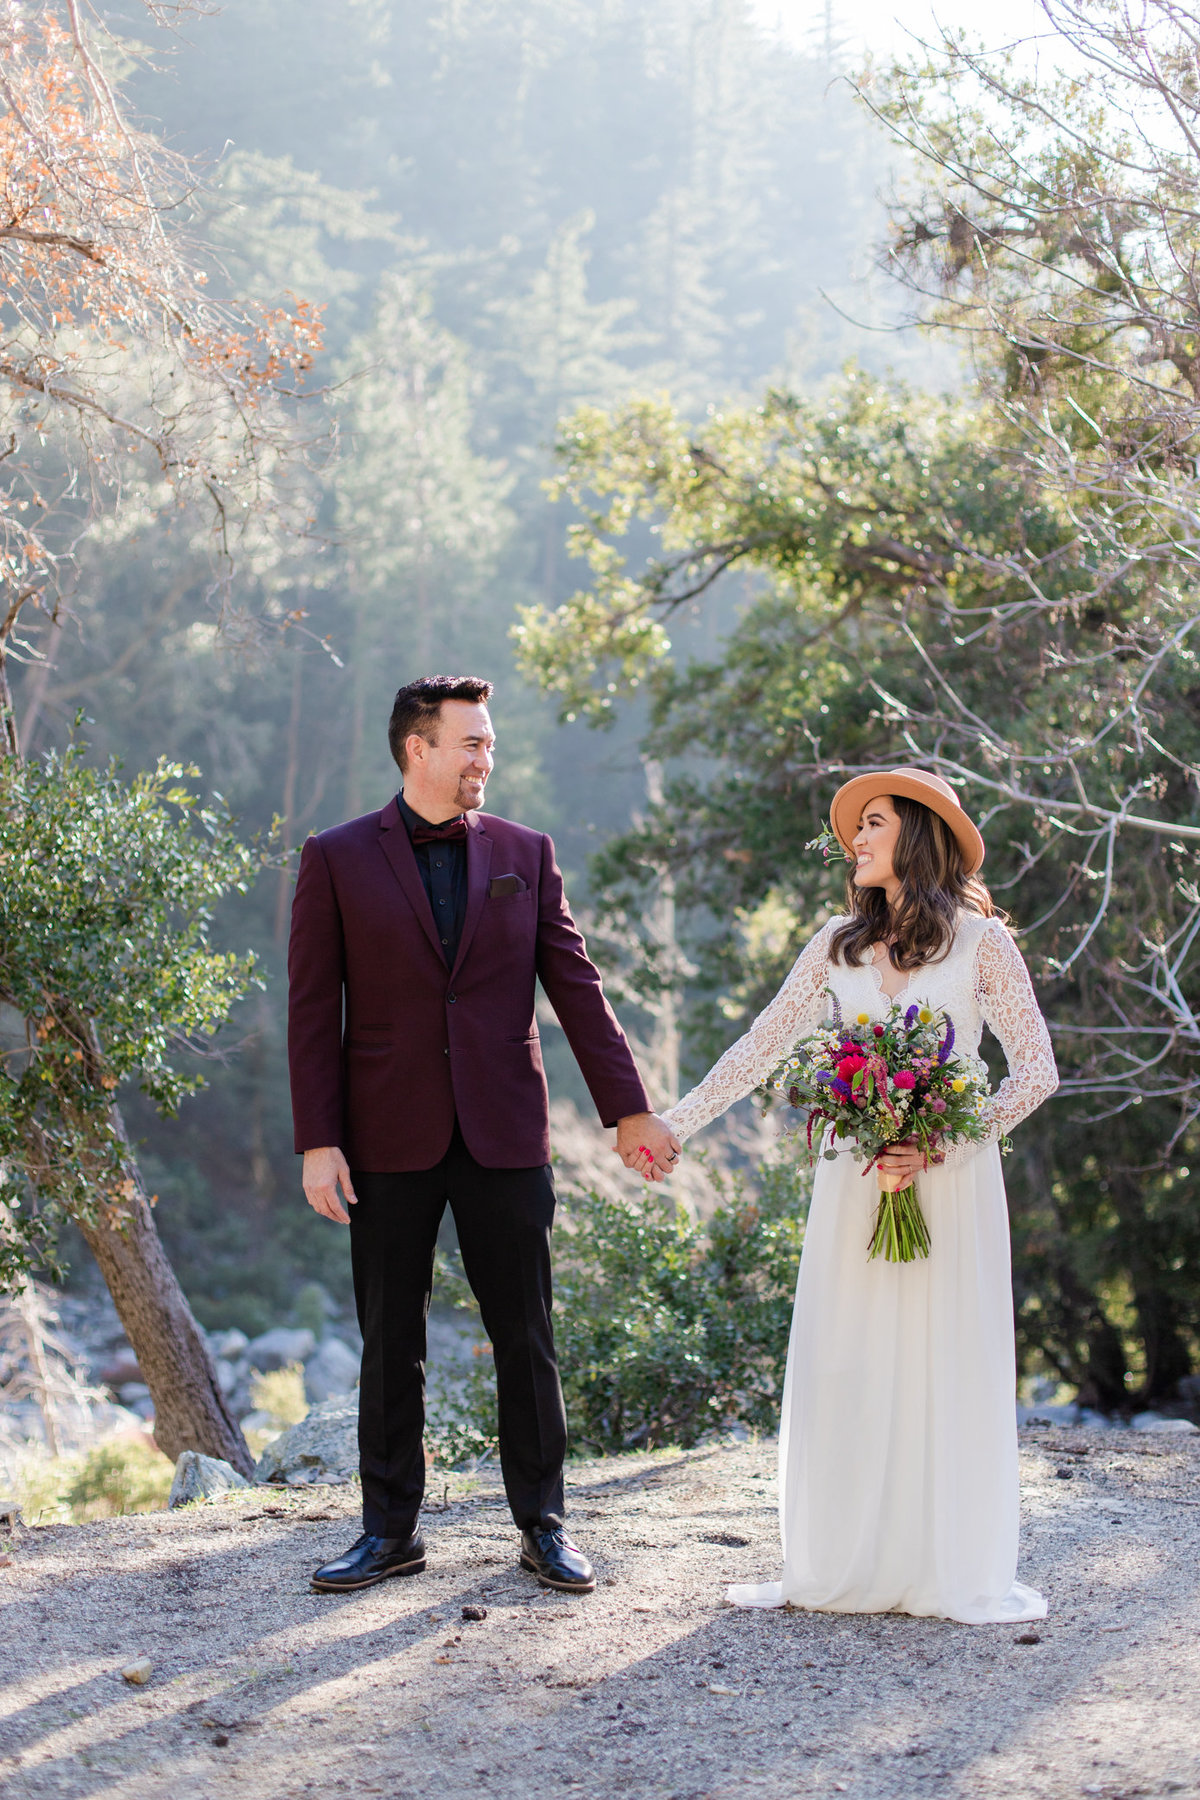 Mt. Baldy Elopement, Mt. Baldy Styled Shoot, Mt. Baldy Wedding, Forest Elopement, Forest Wedding, Boho Wedding, Boho Elopement, Mt. Baldy Boho, Forest Boho, Woodland Boho-5